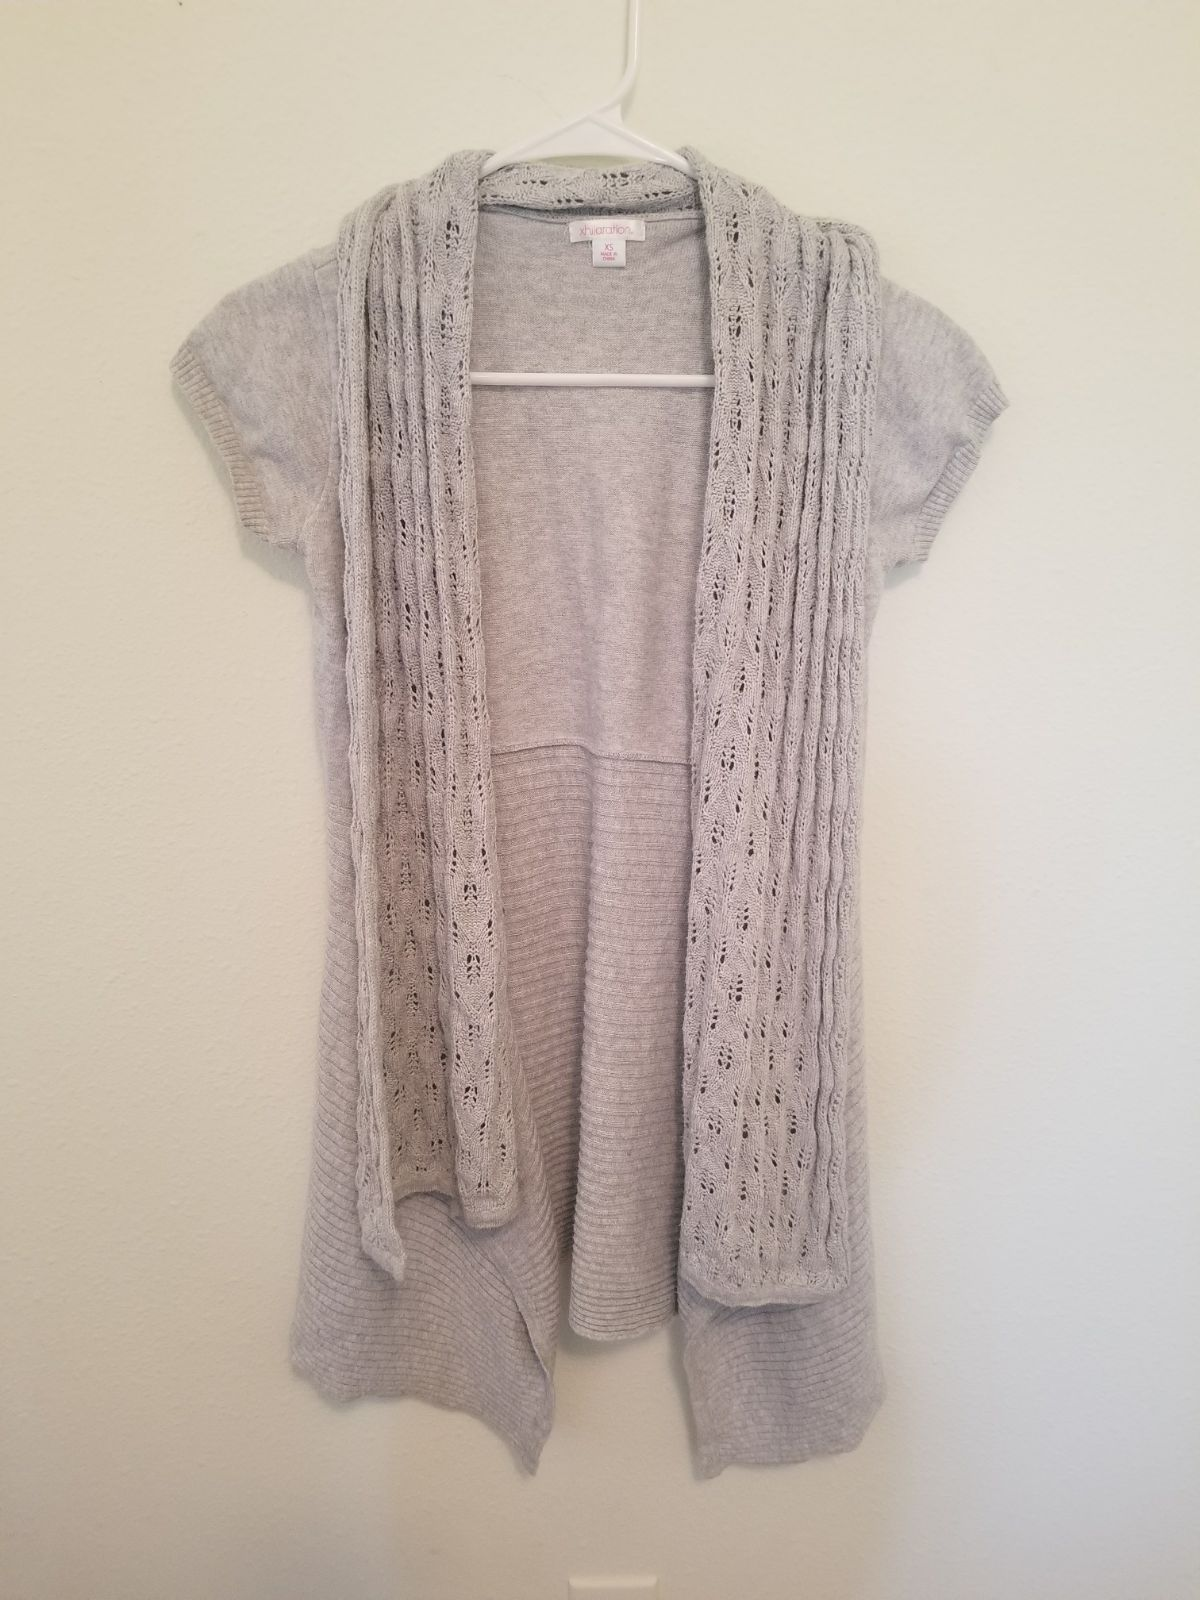 Short sleeve knit cardigan - Mercari: BUY & SELL THINGS YOU LOVE